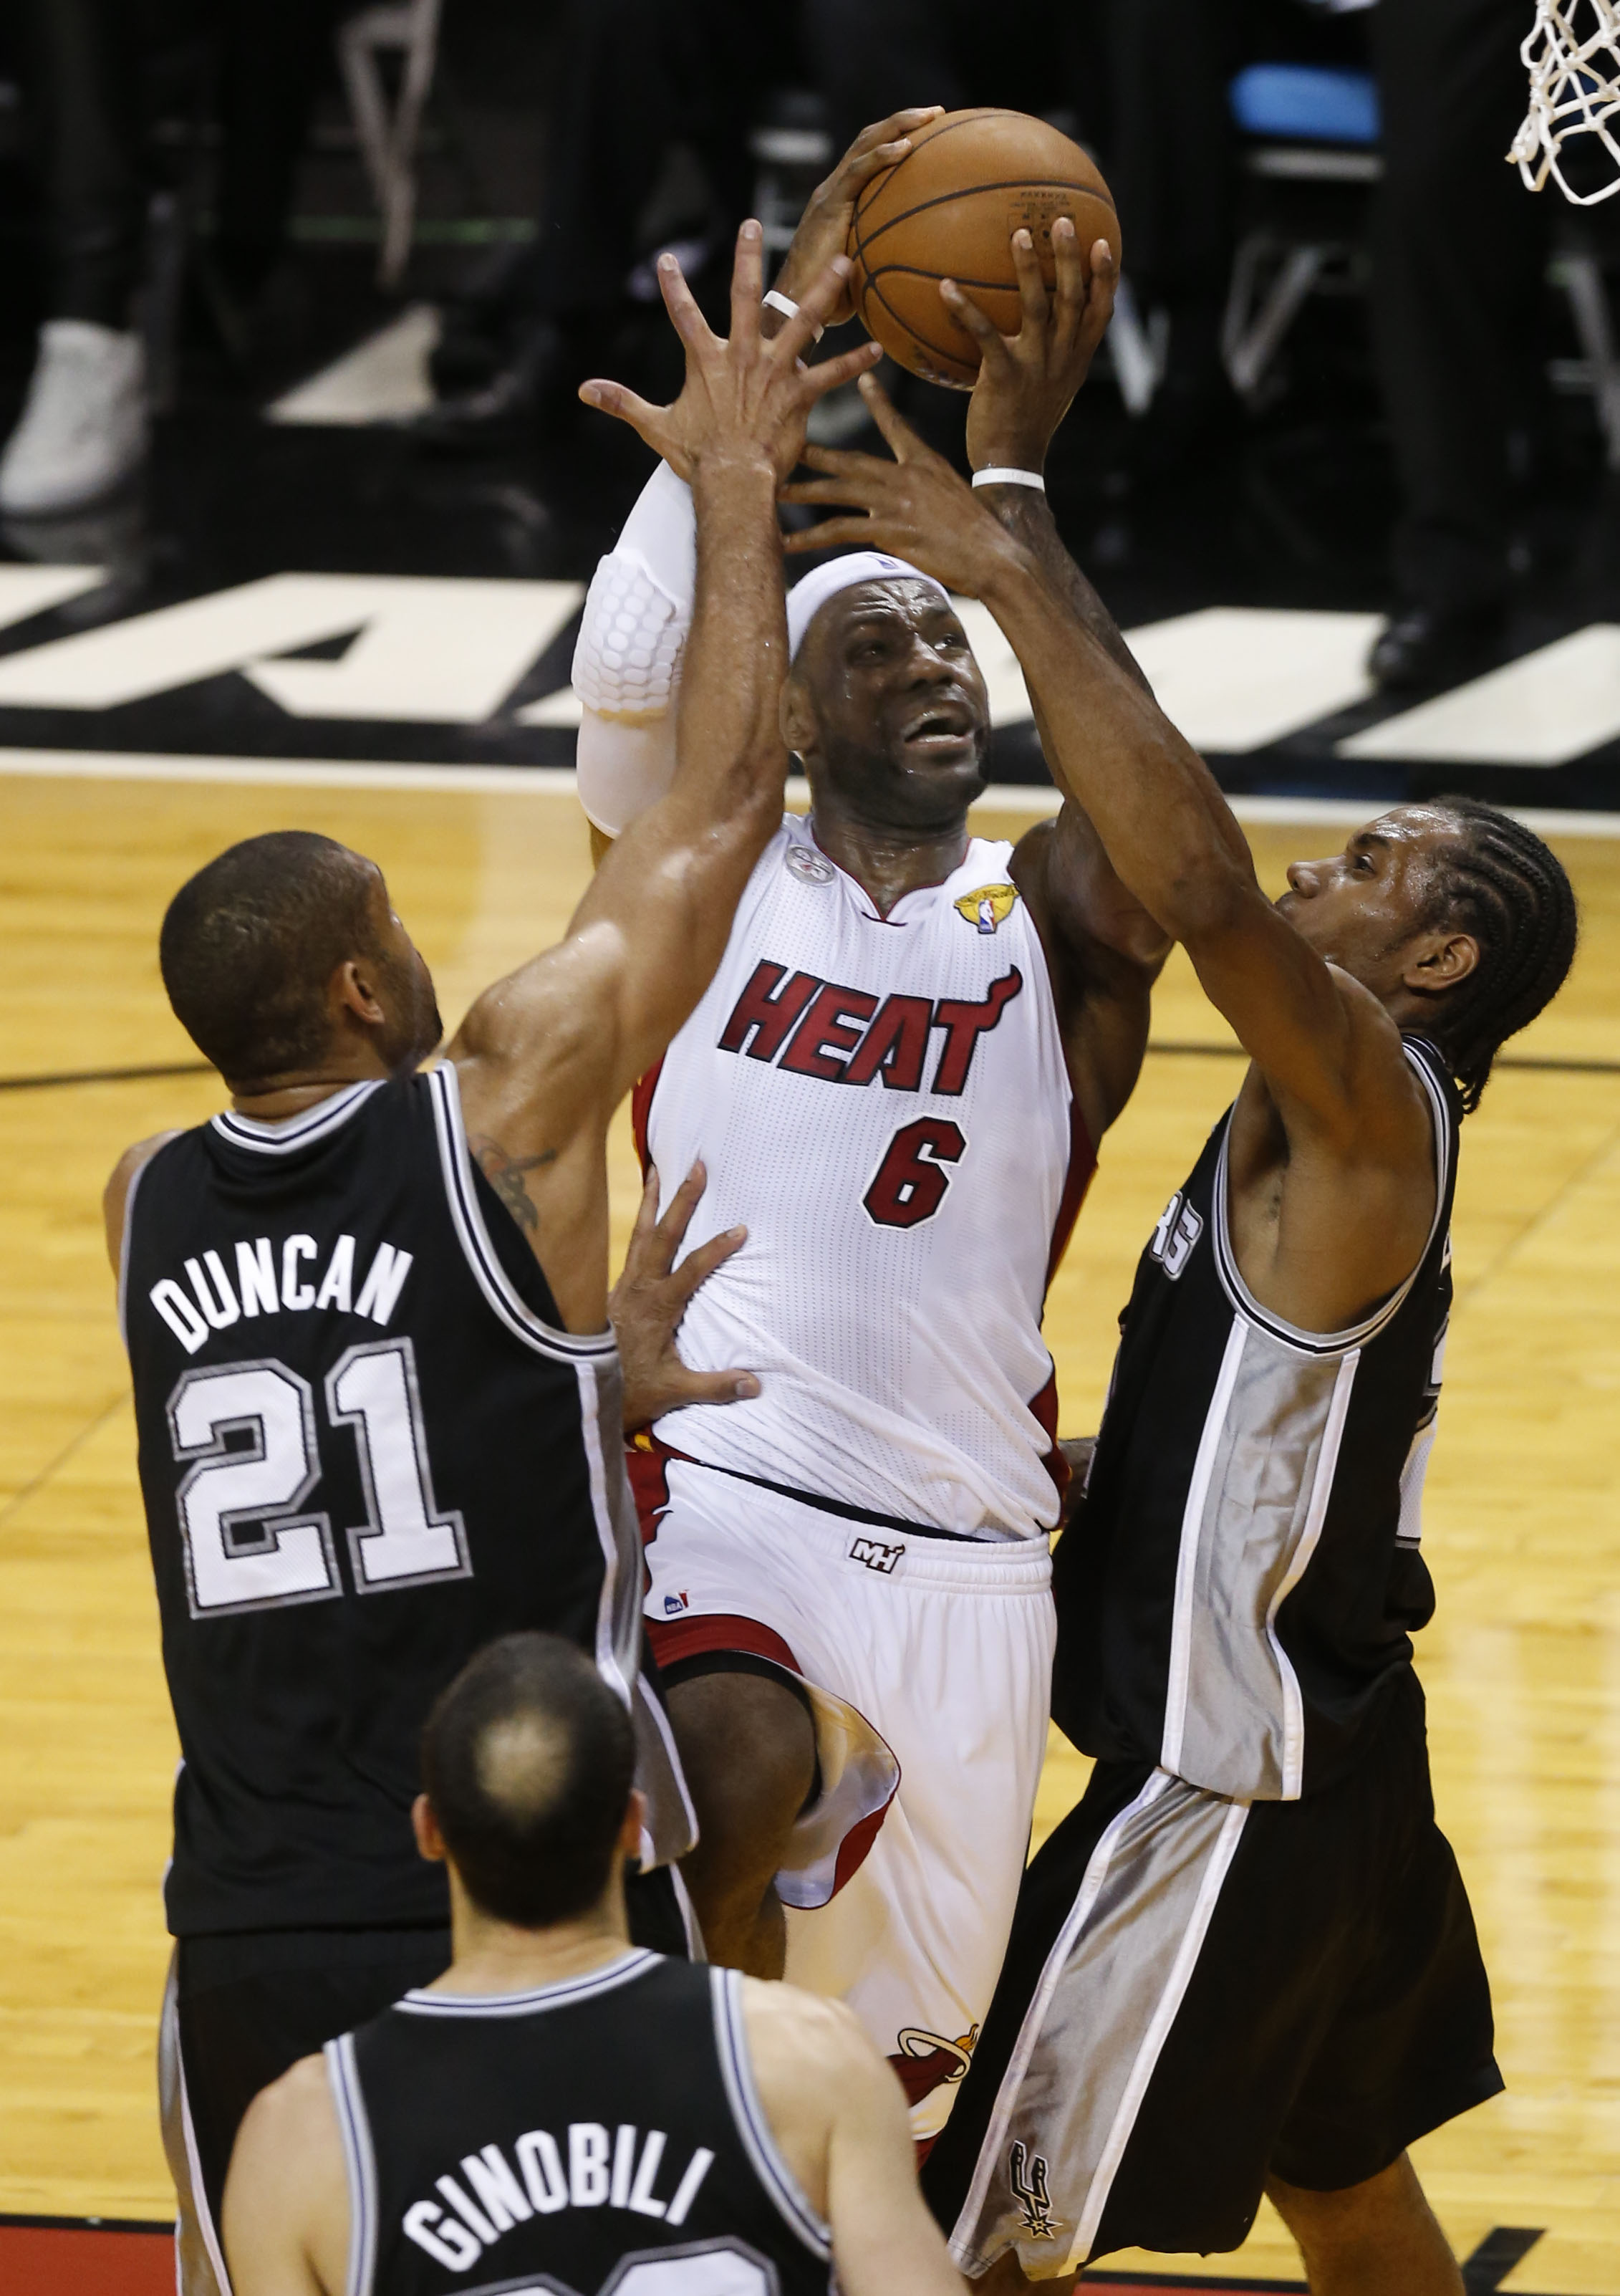 Will Nba Finals Be On Espn3 | Basketball Scores